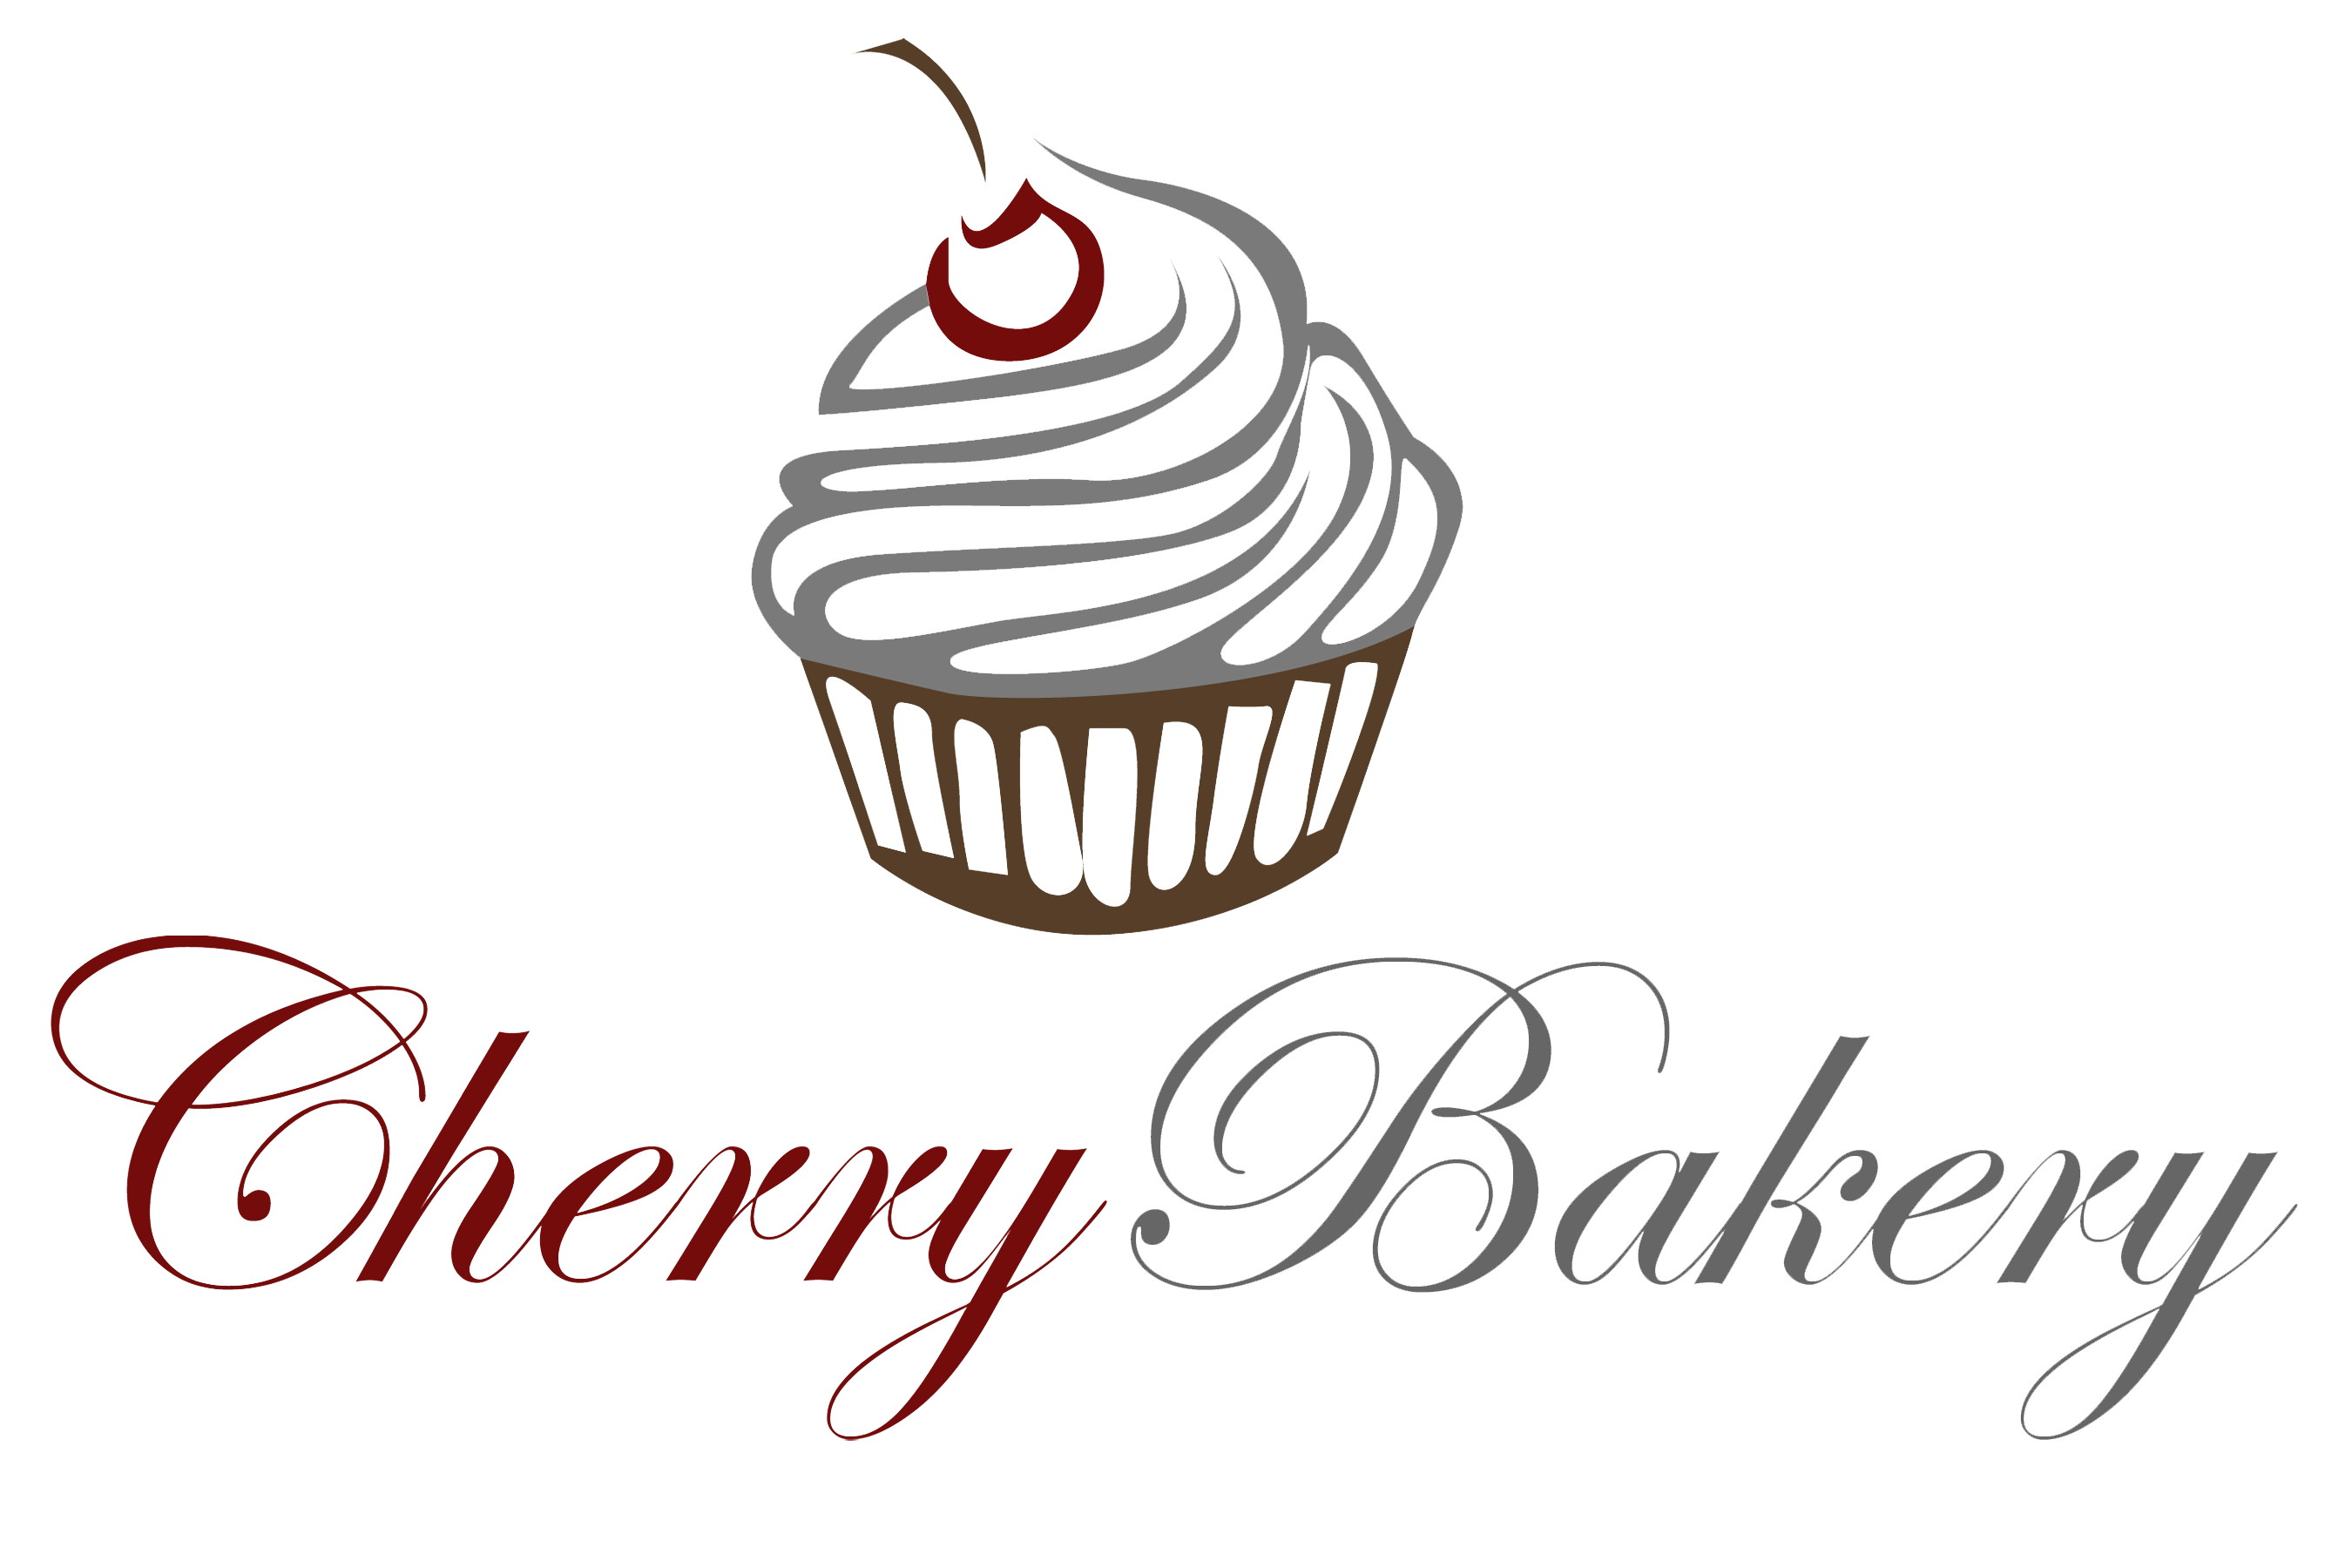 Little Cherry Bakery